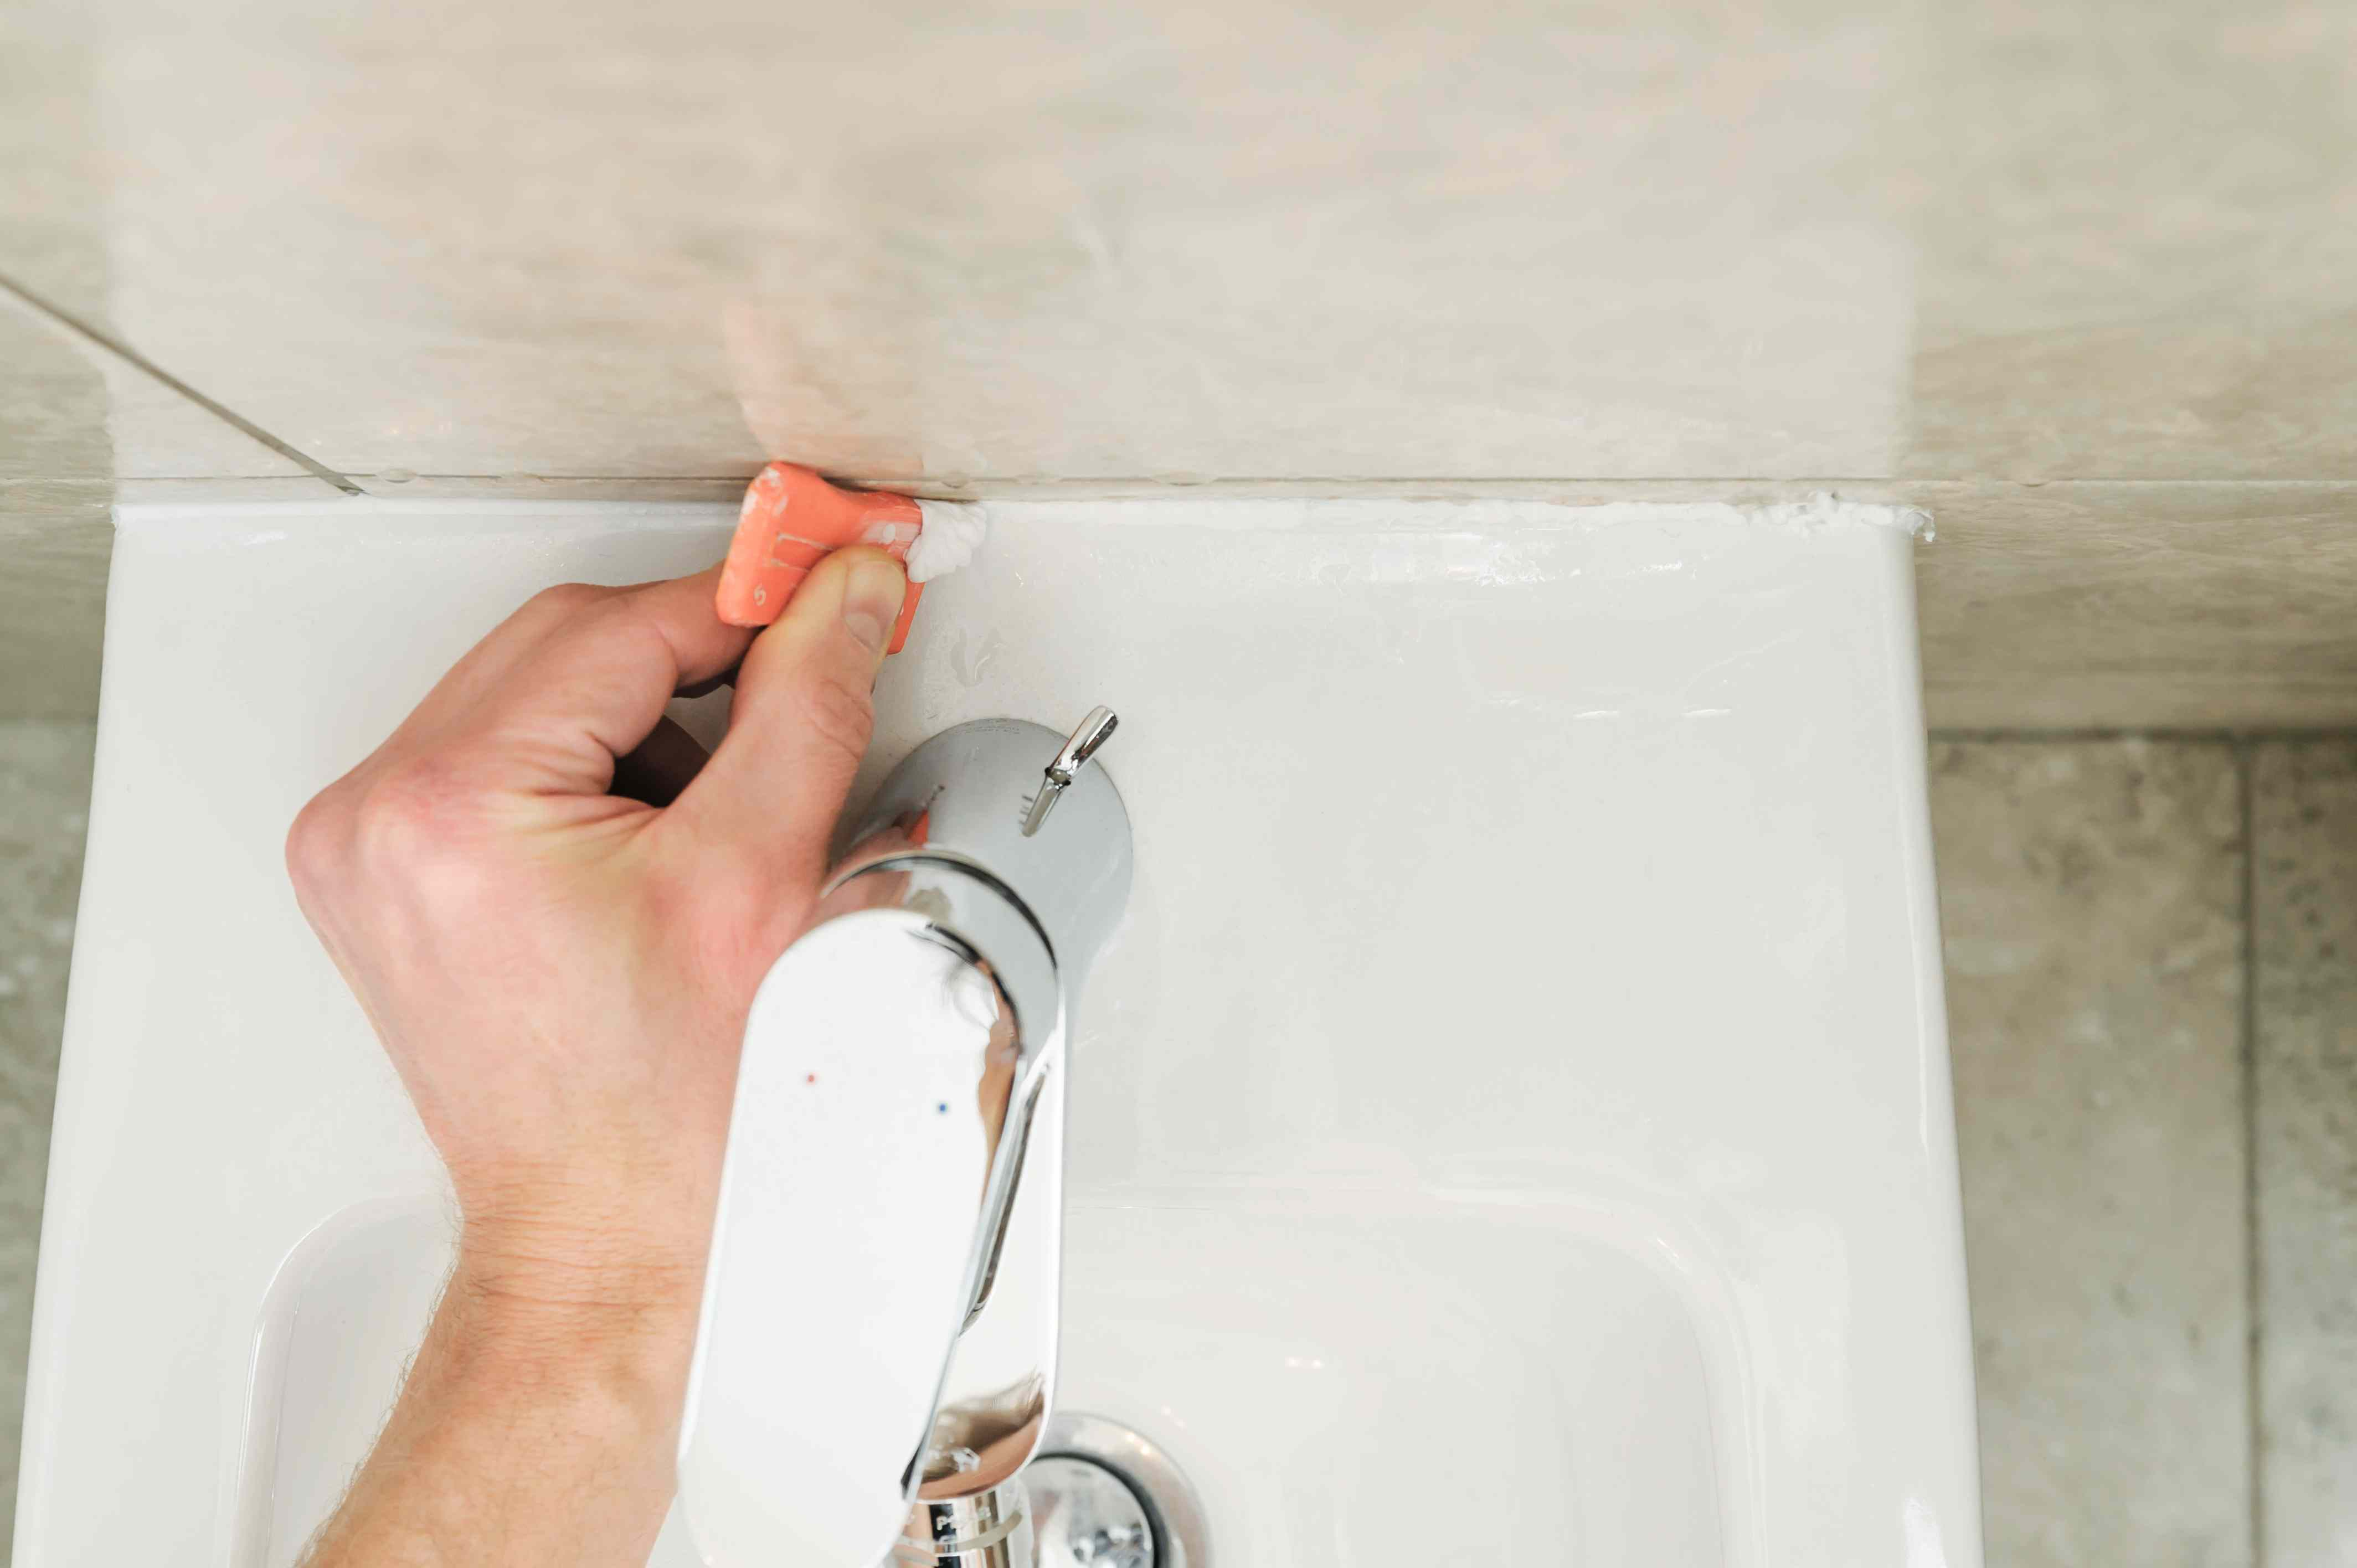 Worker smoothing silicone sealant.